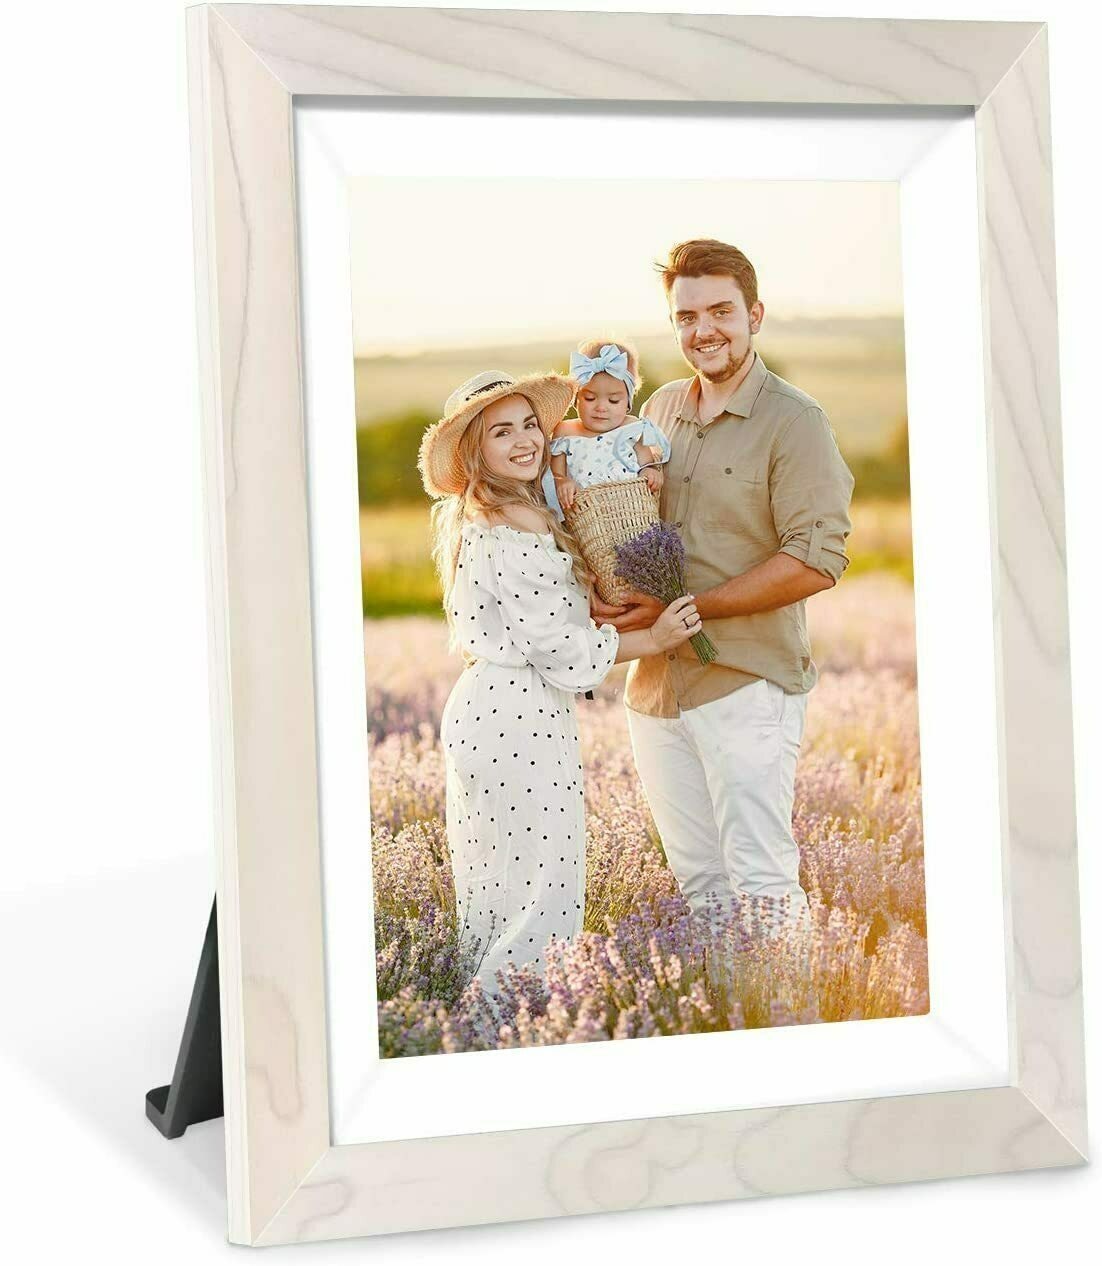 Frameo Digital Picture Frame